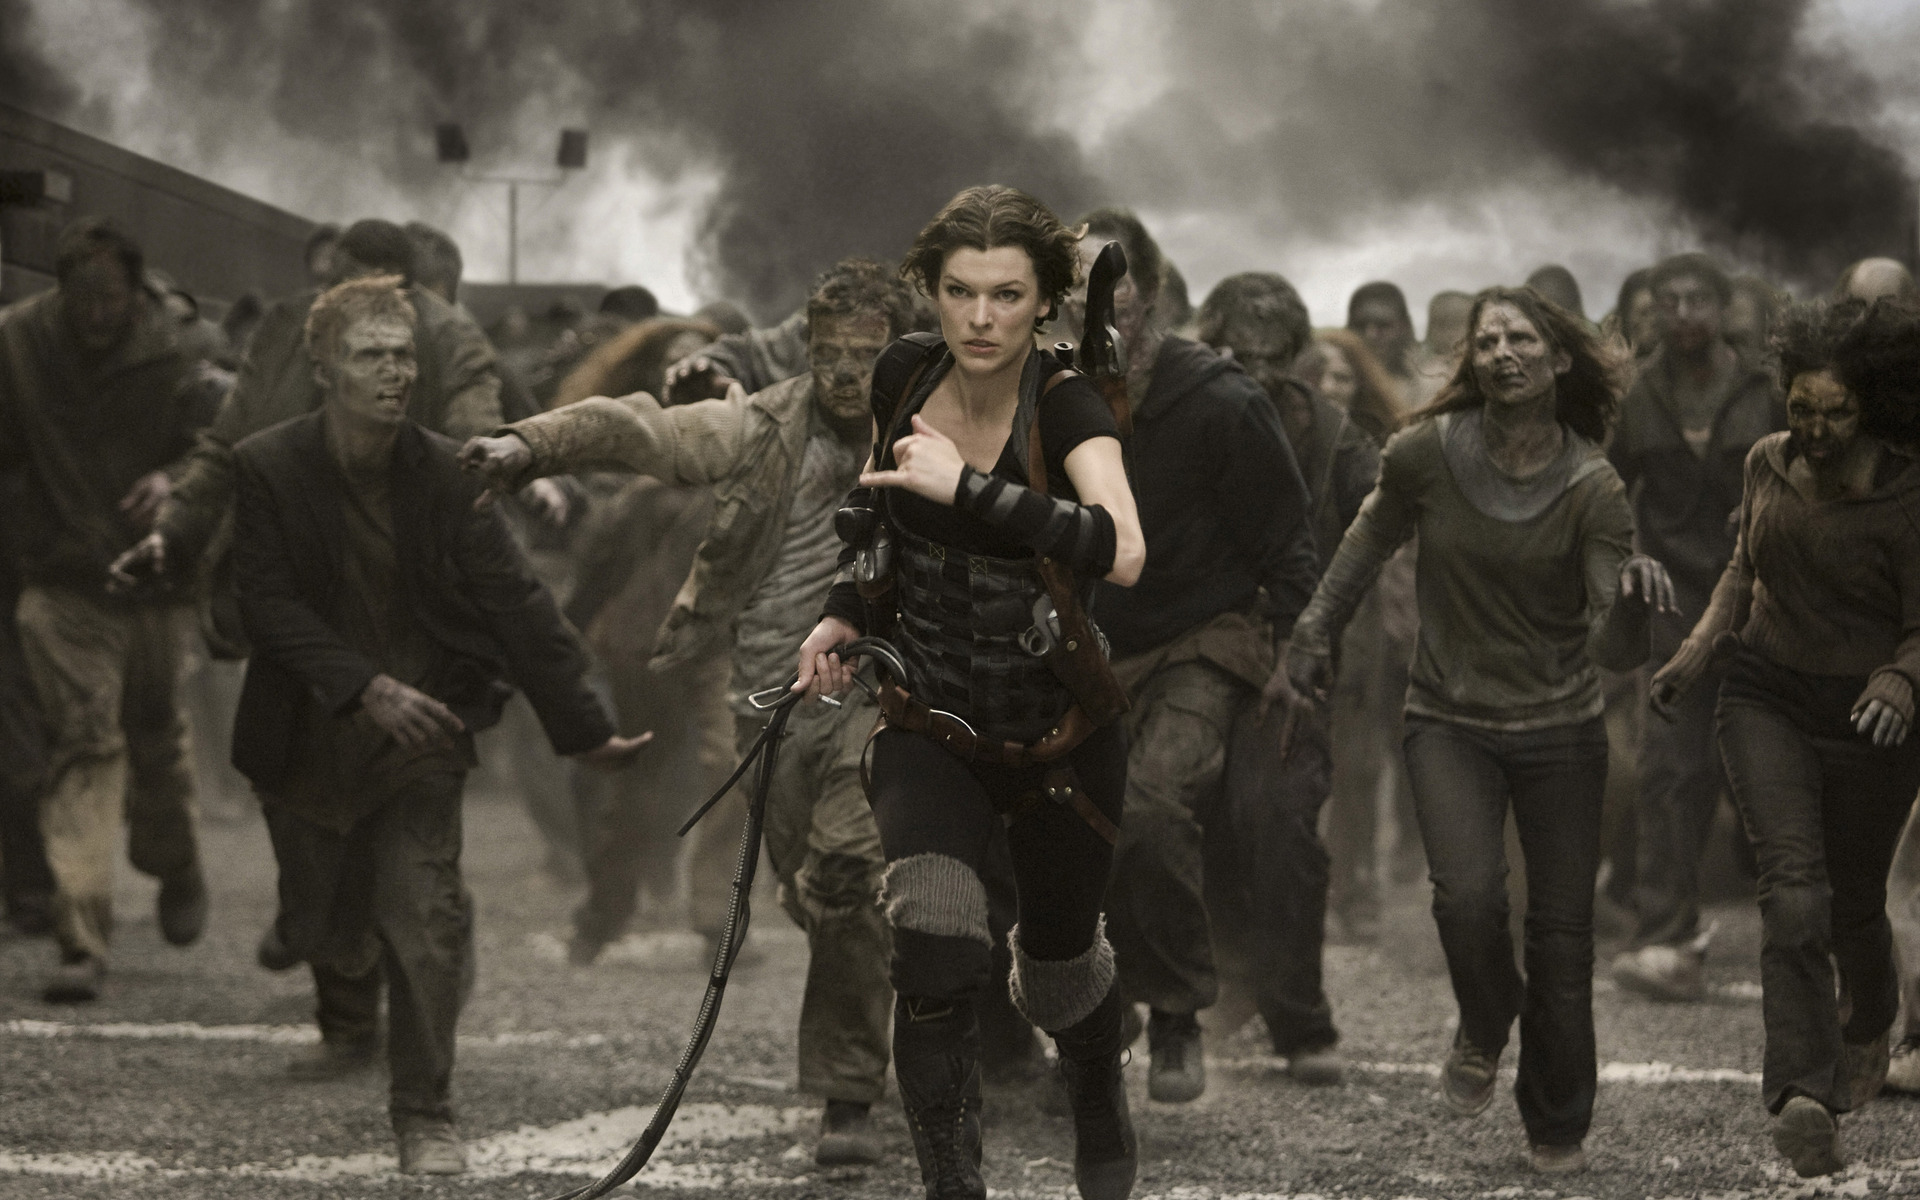 Will You Survive An Impending Zombie Apocalypse? A Fun Prediction Based On Your Enneagram